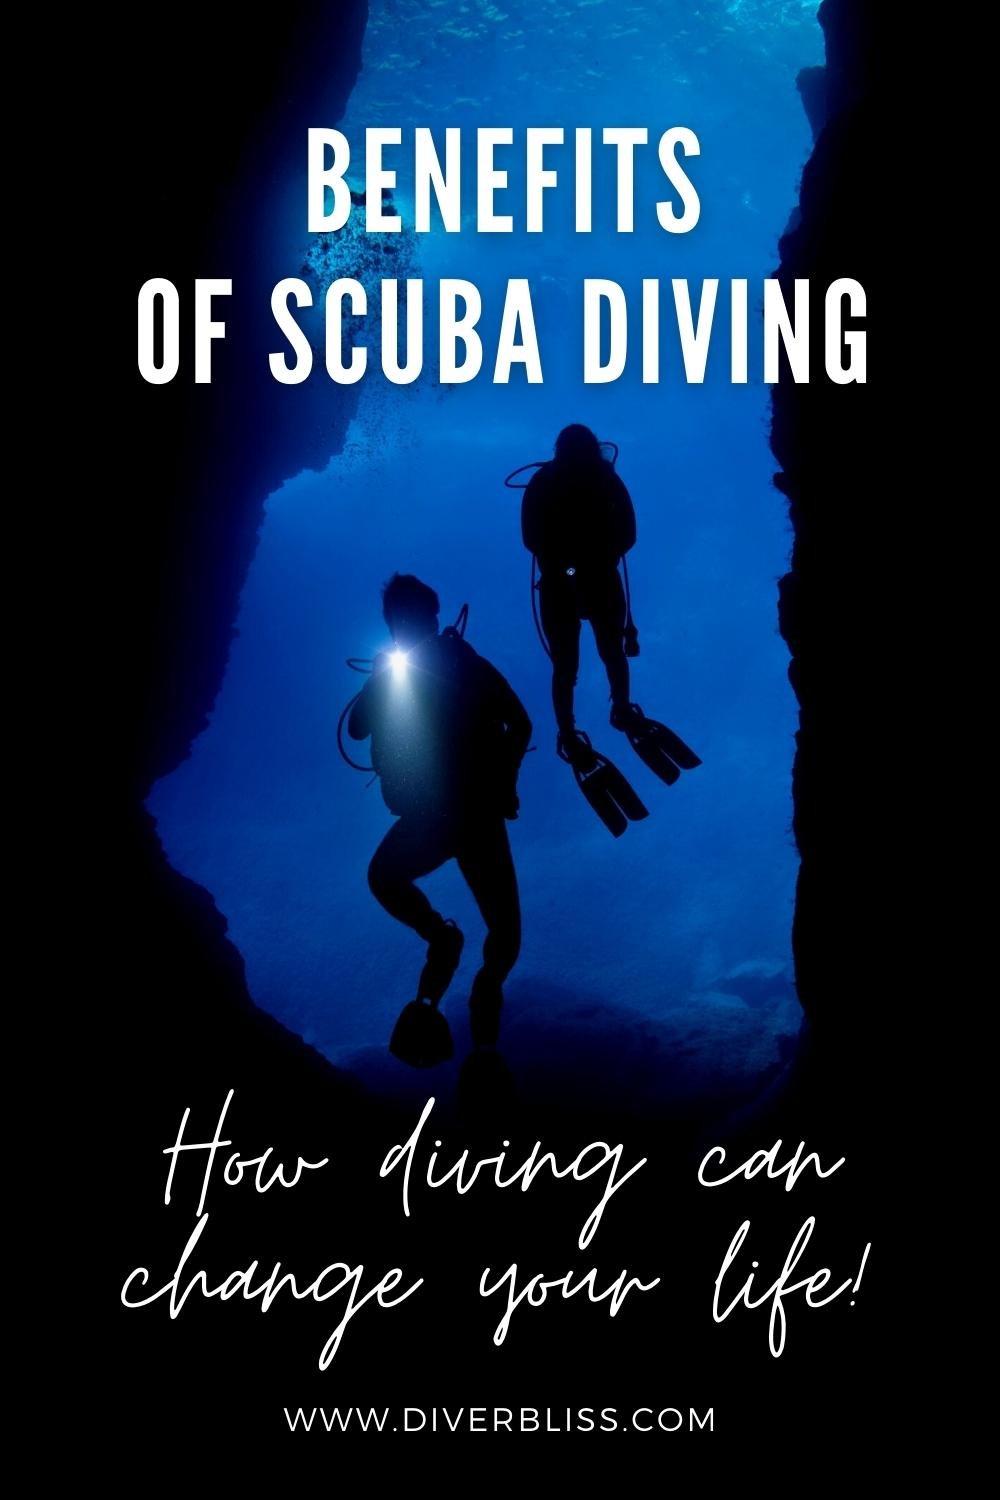 Benefits of scuba diving: How diving can change your life